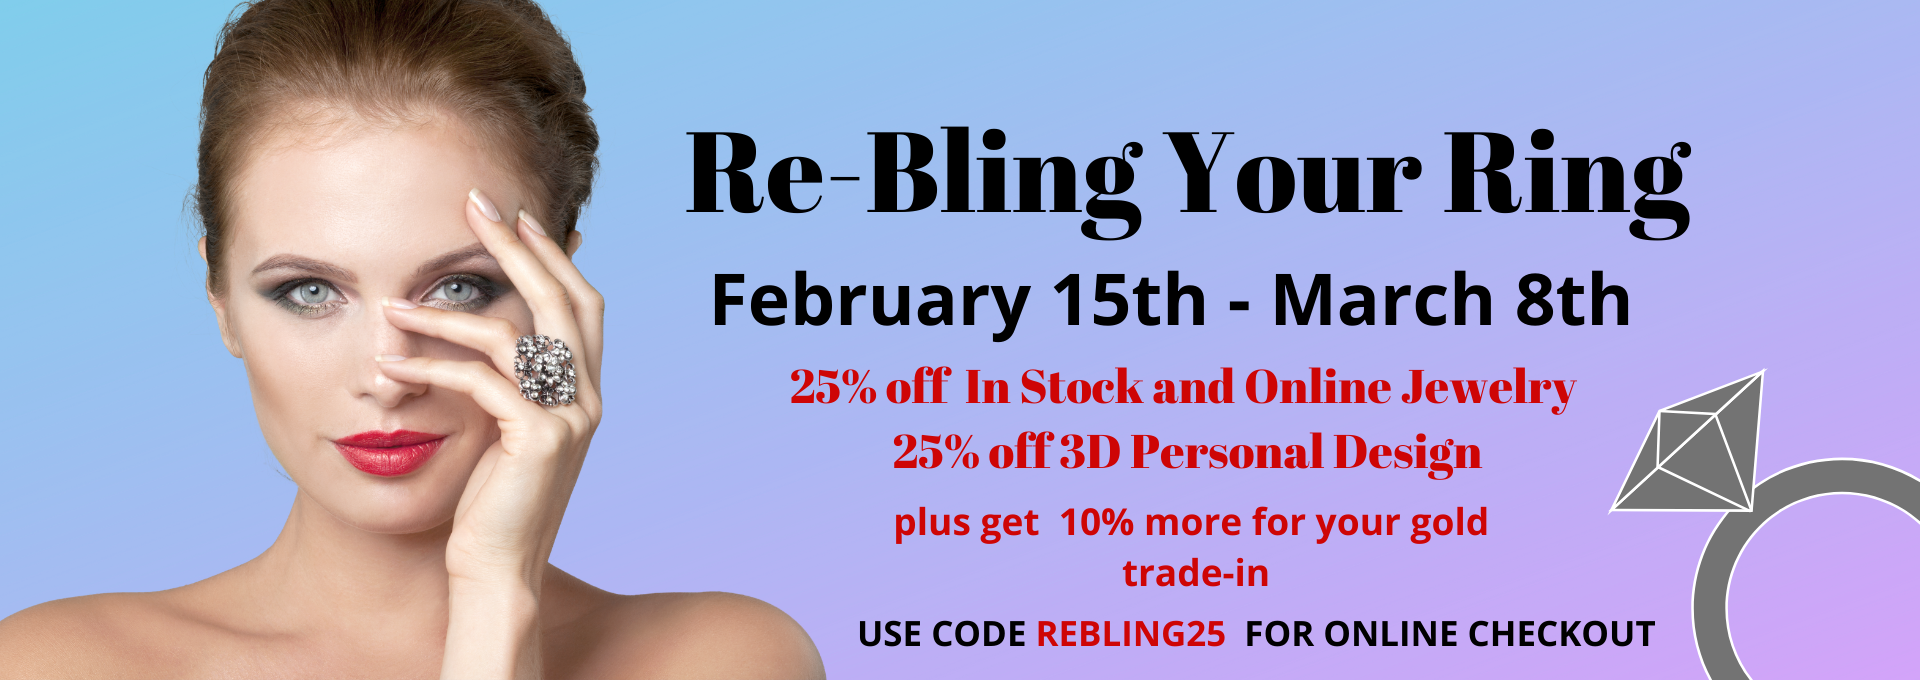 Re Bling Your Ring